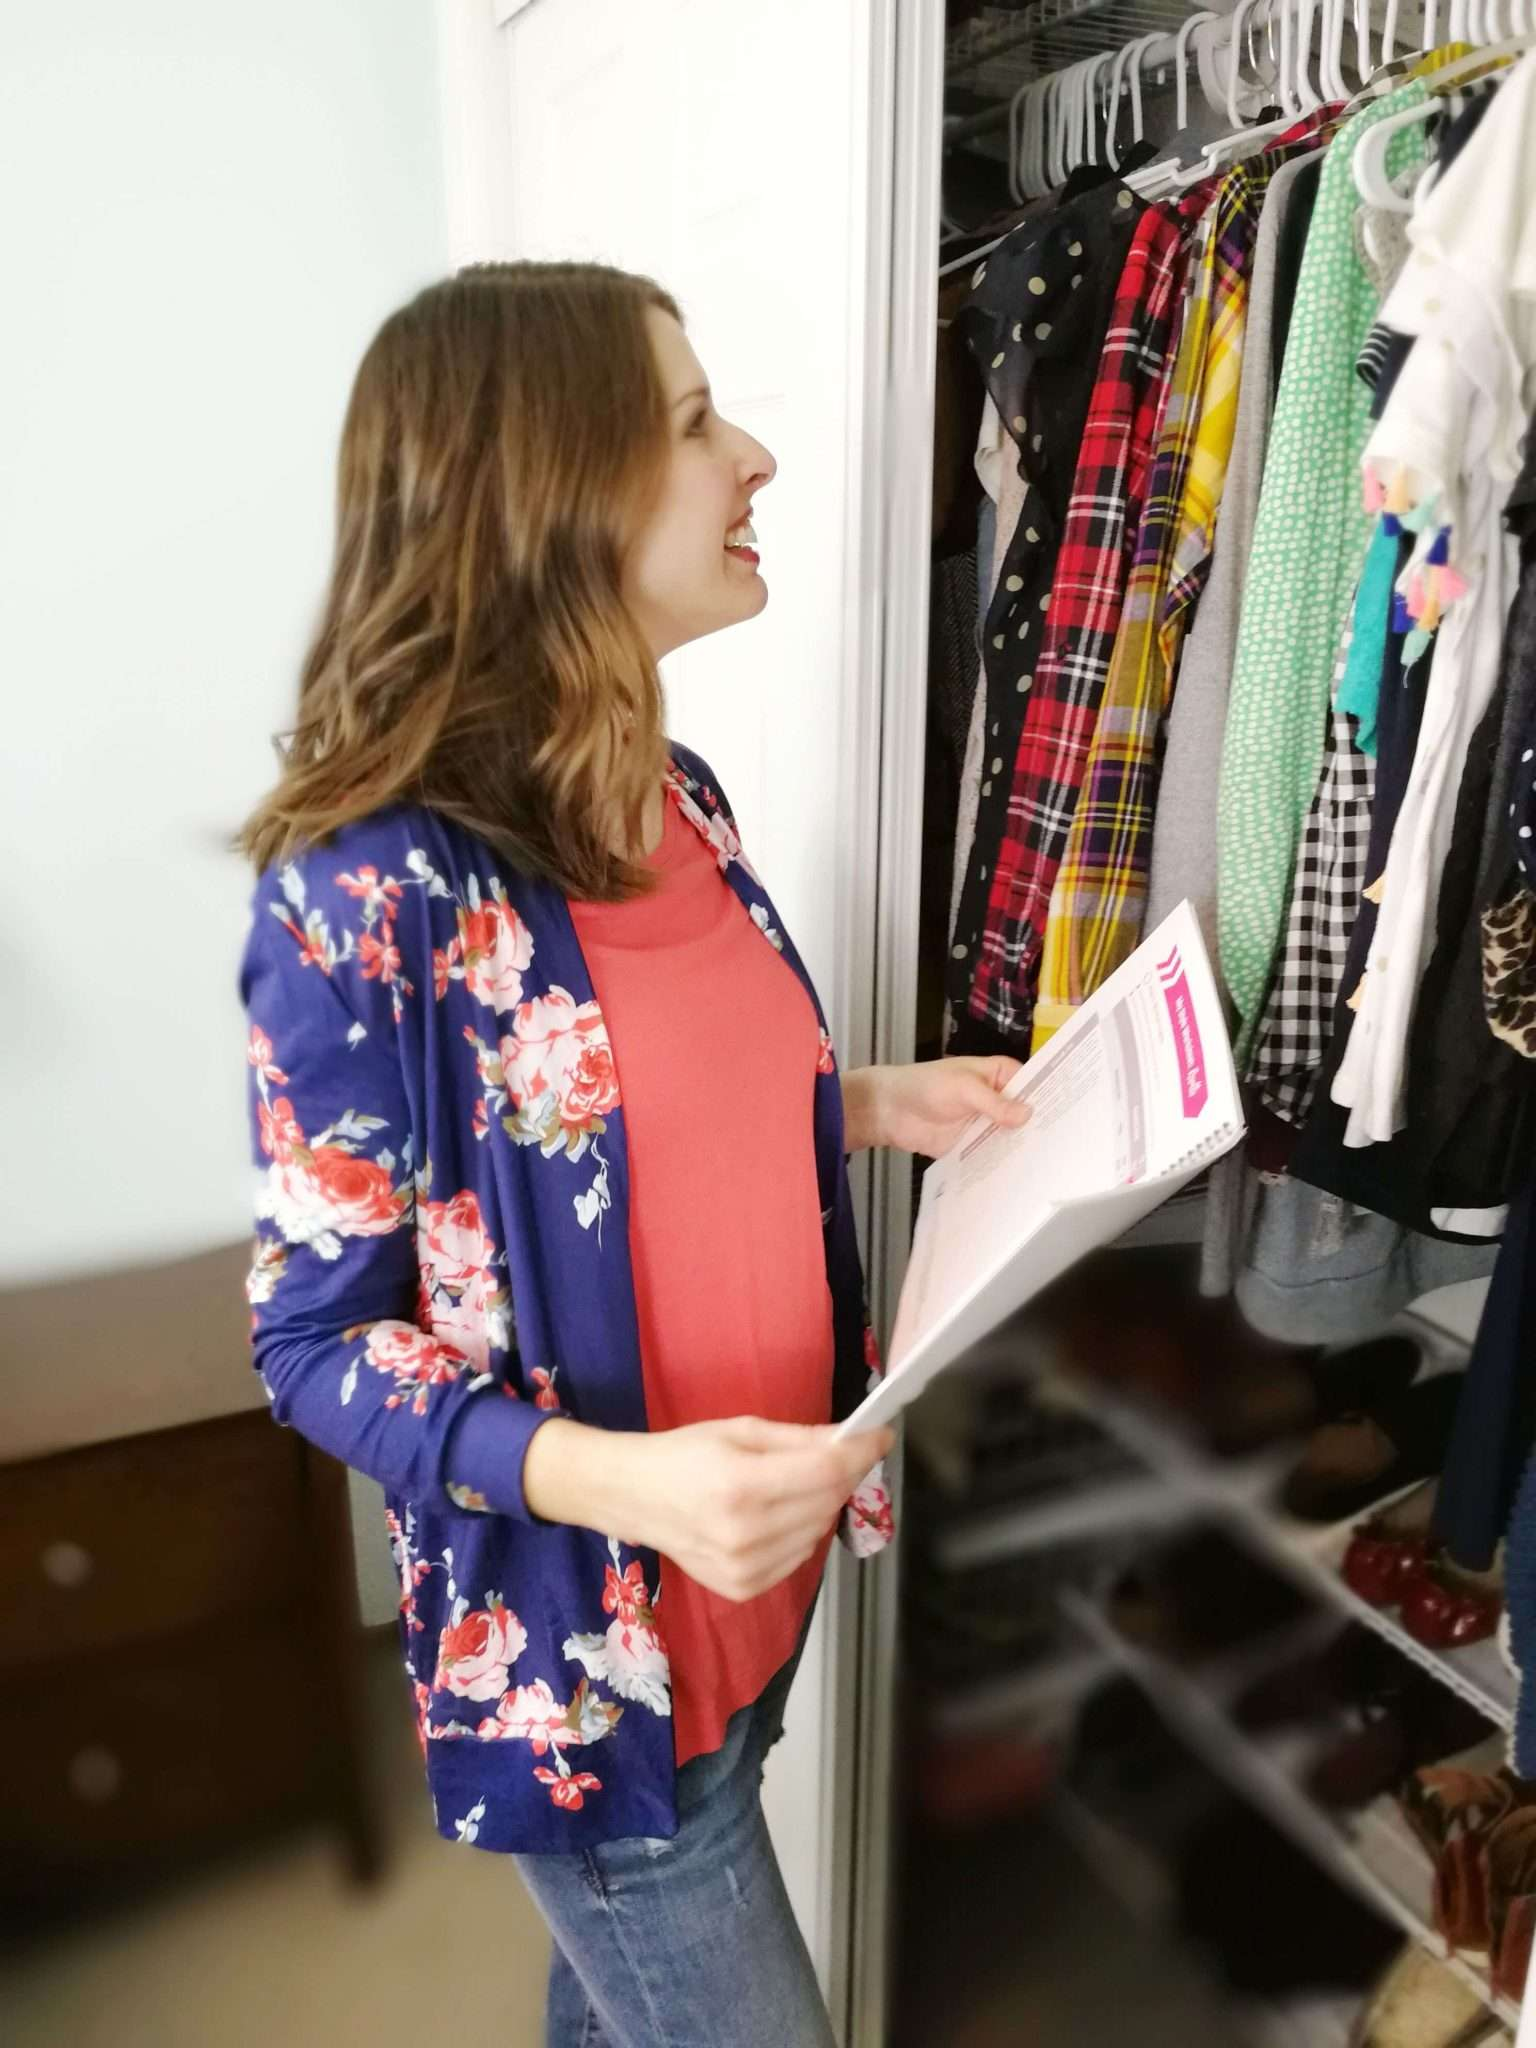 Wardrobe Video Course For Moms Frumpy To Fabulous In 30 Days